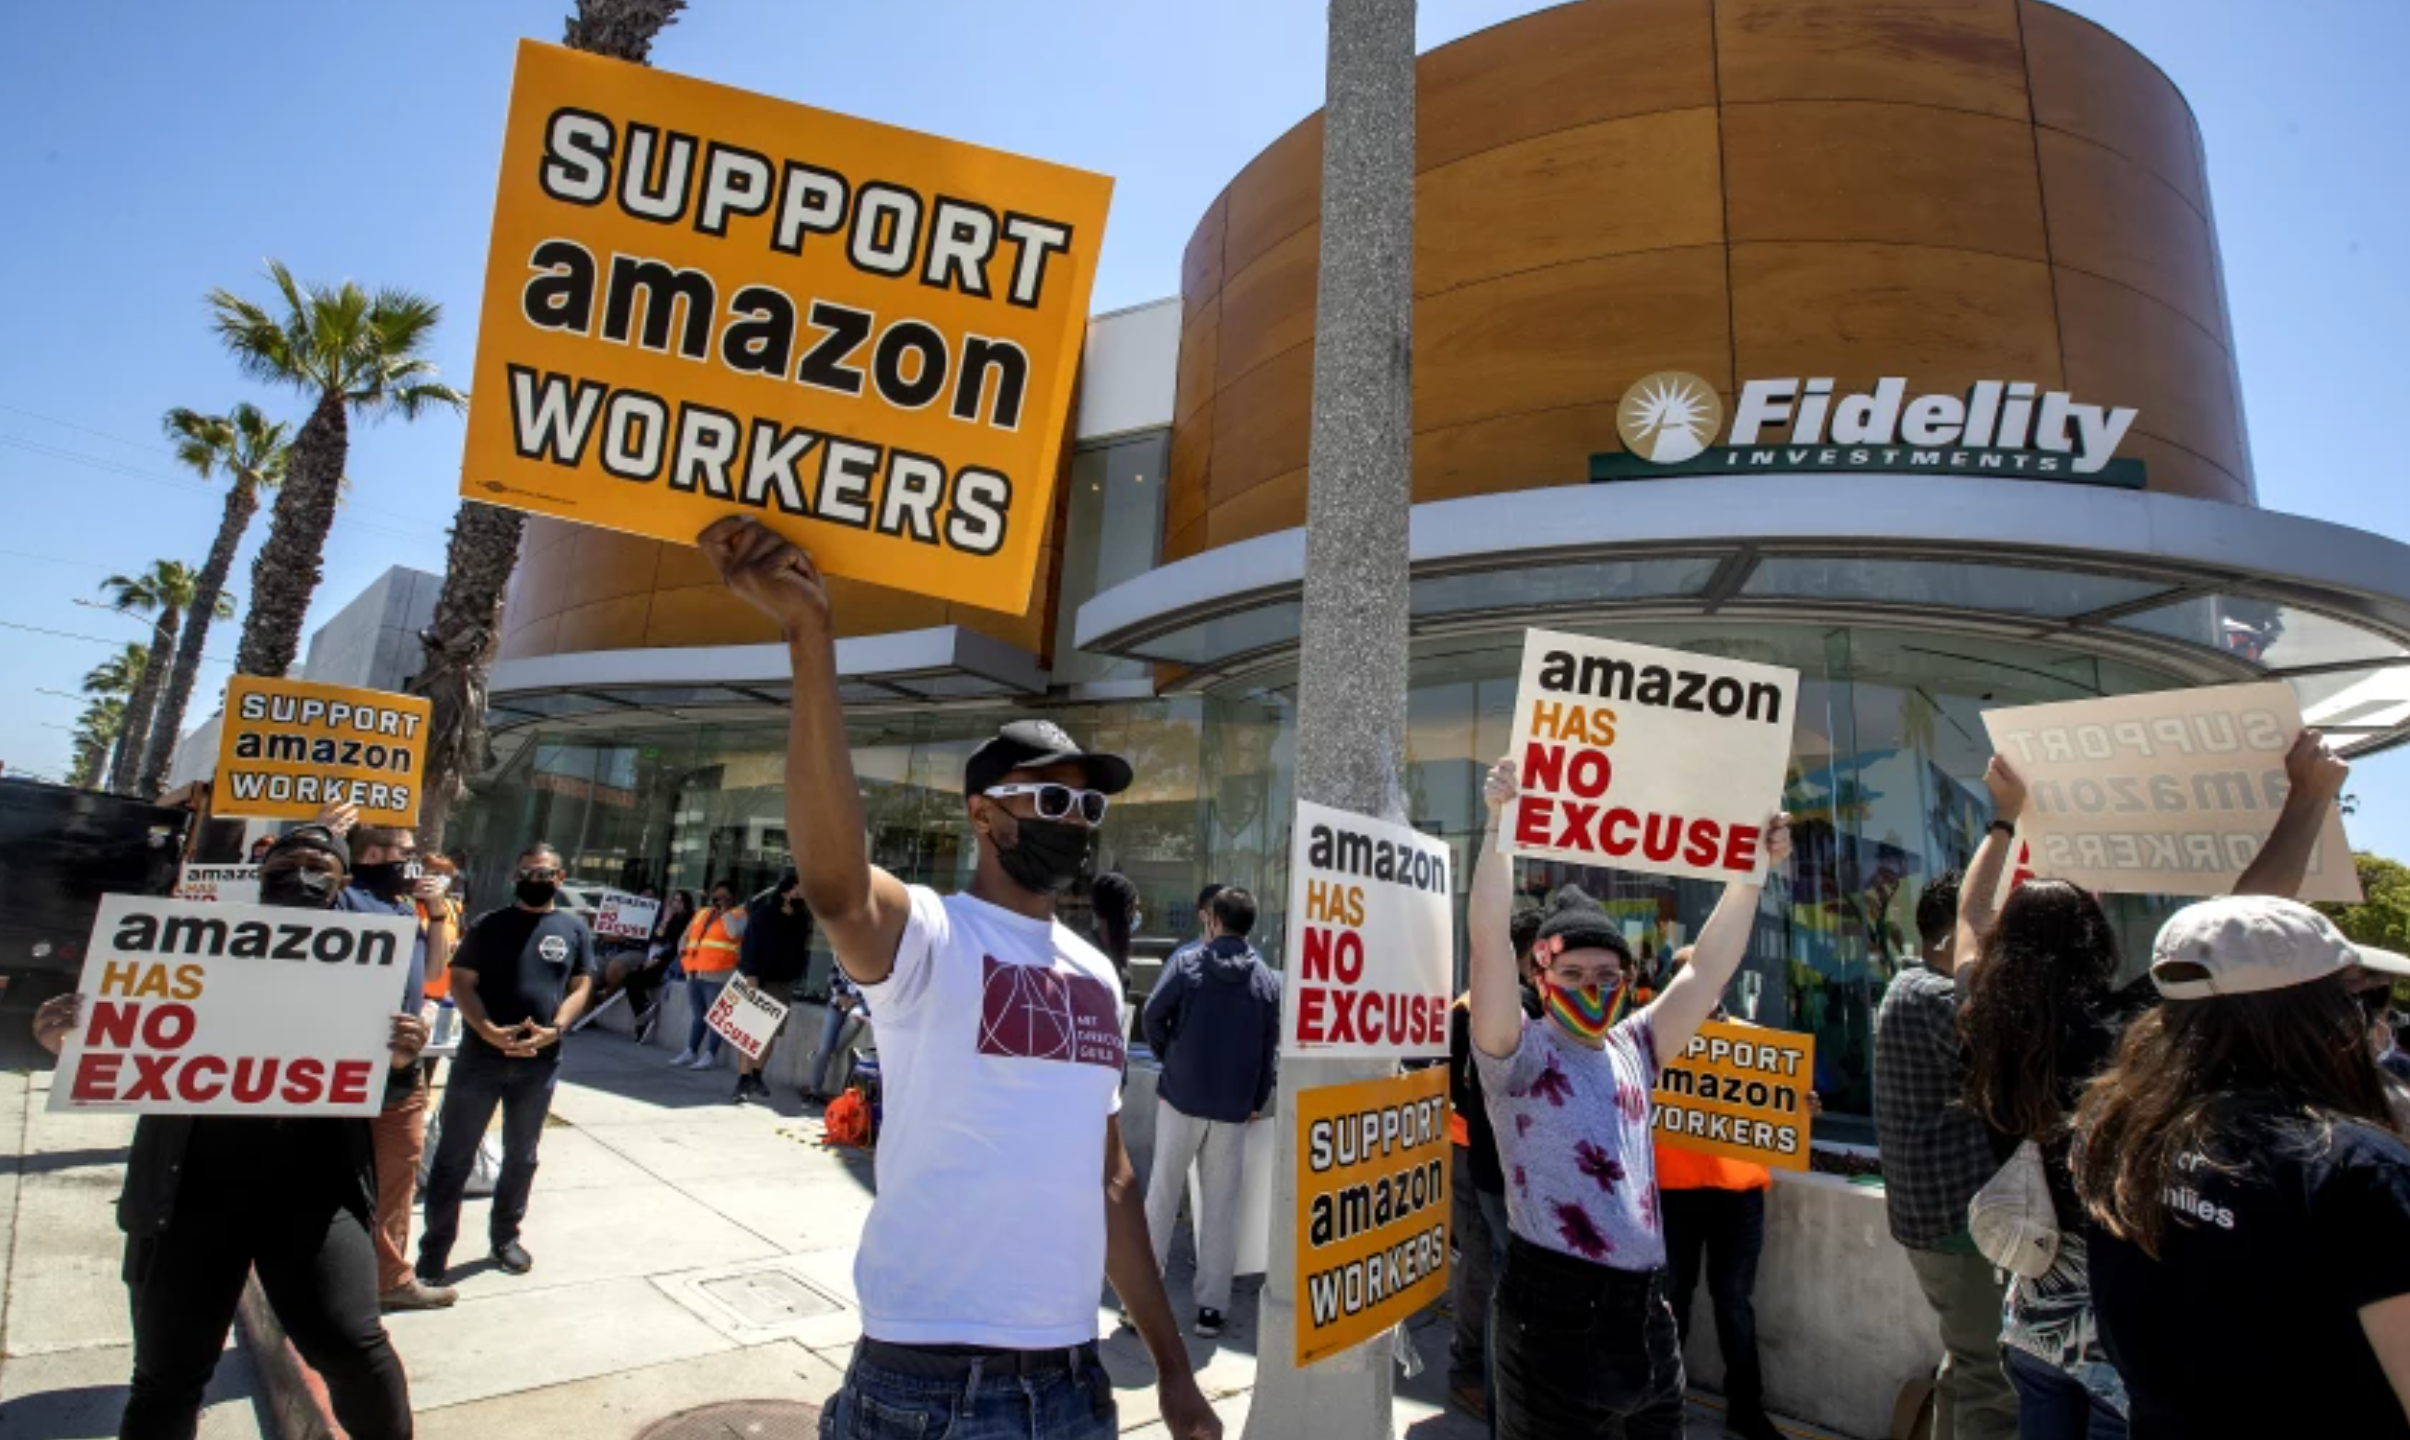 Union activists and other supporters of Amazon workers protested in May outside Fidelity Investments, one of Amazon's largest shareholders, in Santa Monica. Activists want Amazon to be more accountable to workers, who too frequently get injured on the job. (Mel Melcon / Los Angeles Times)